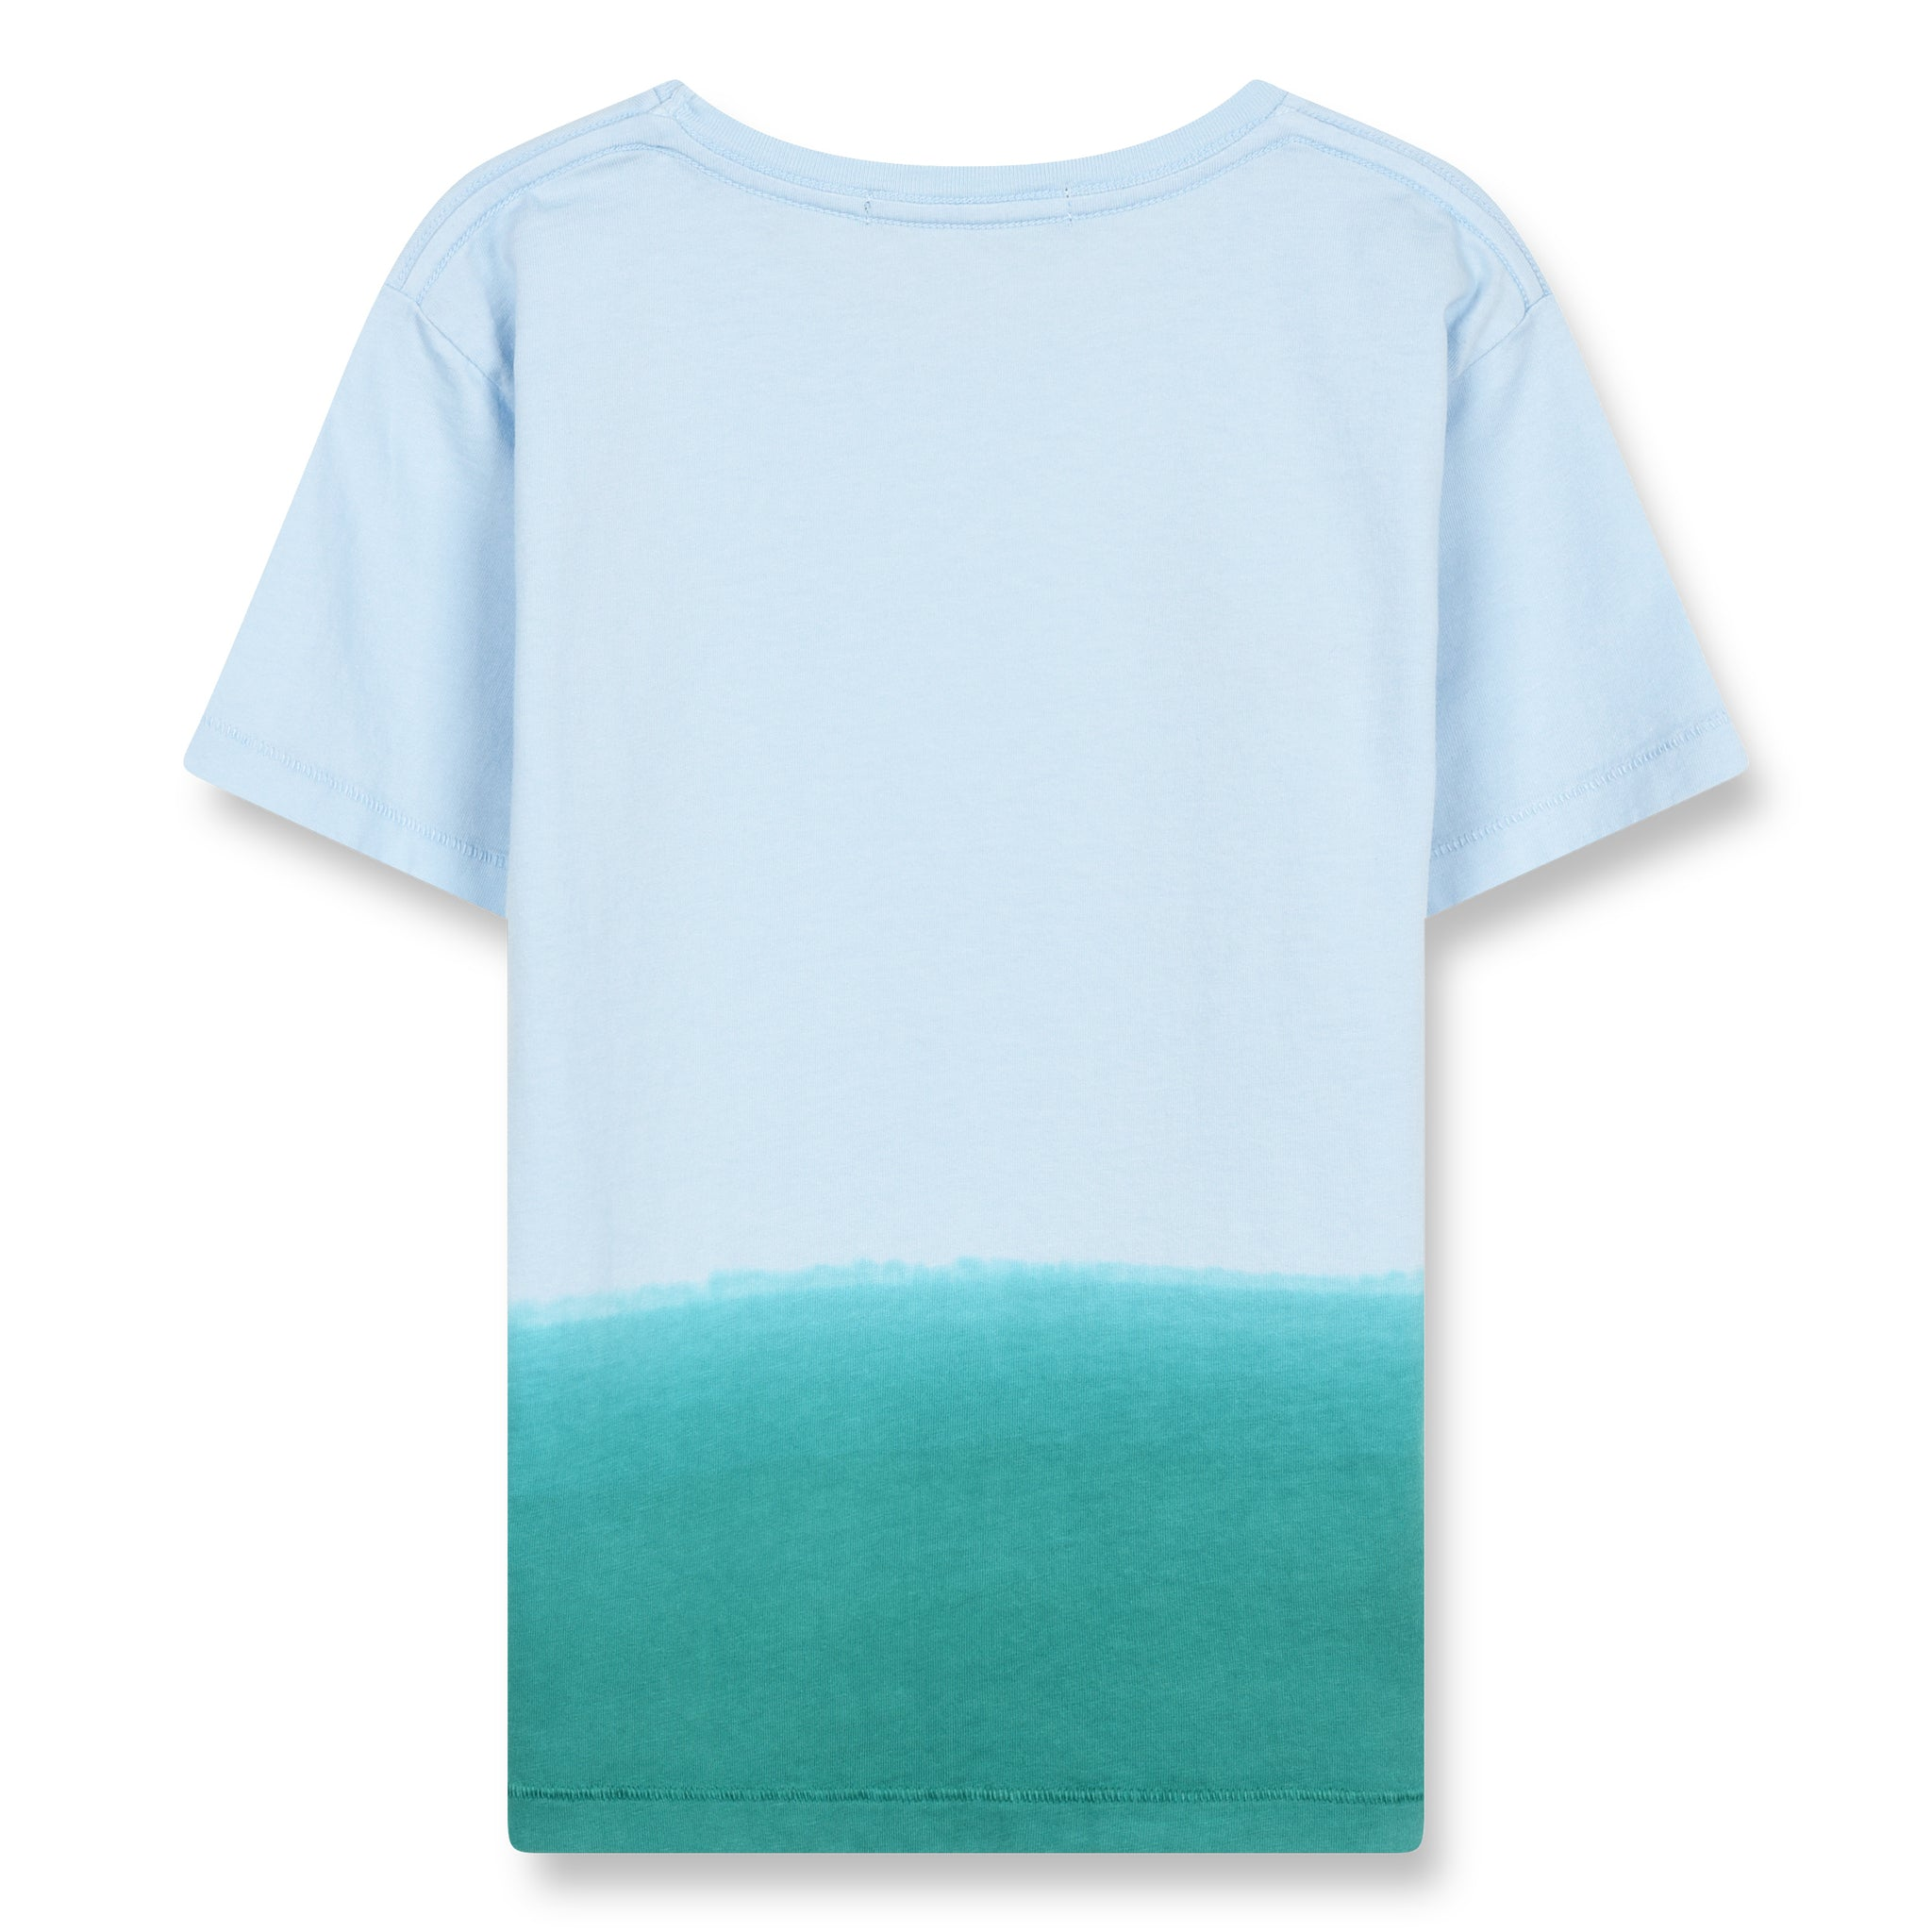 DALTON Wave Blue Cruisin - Short Sleeves T-Shirt 2